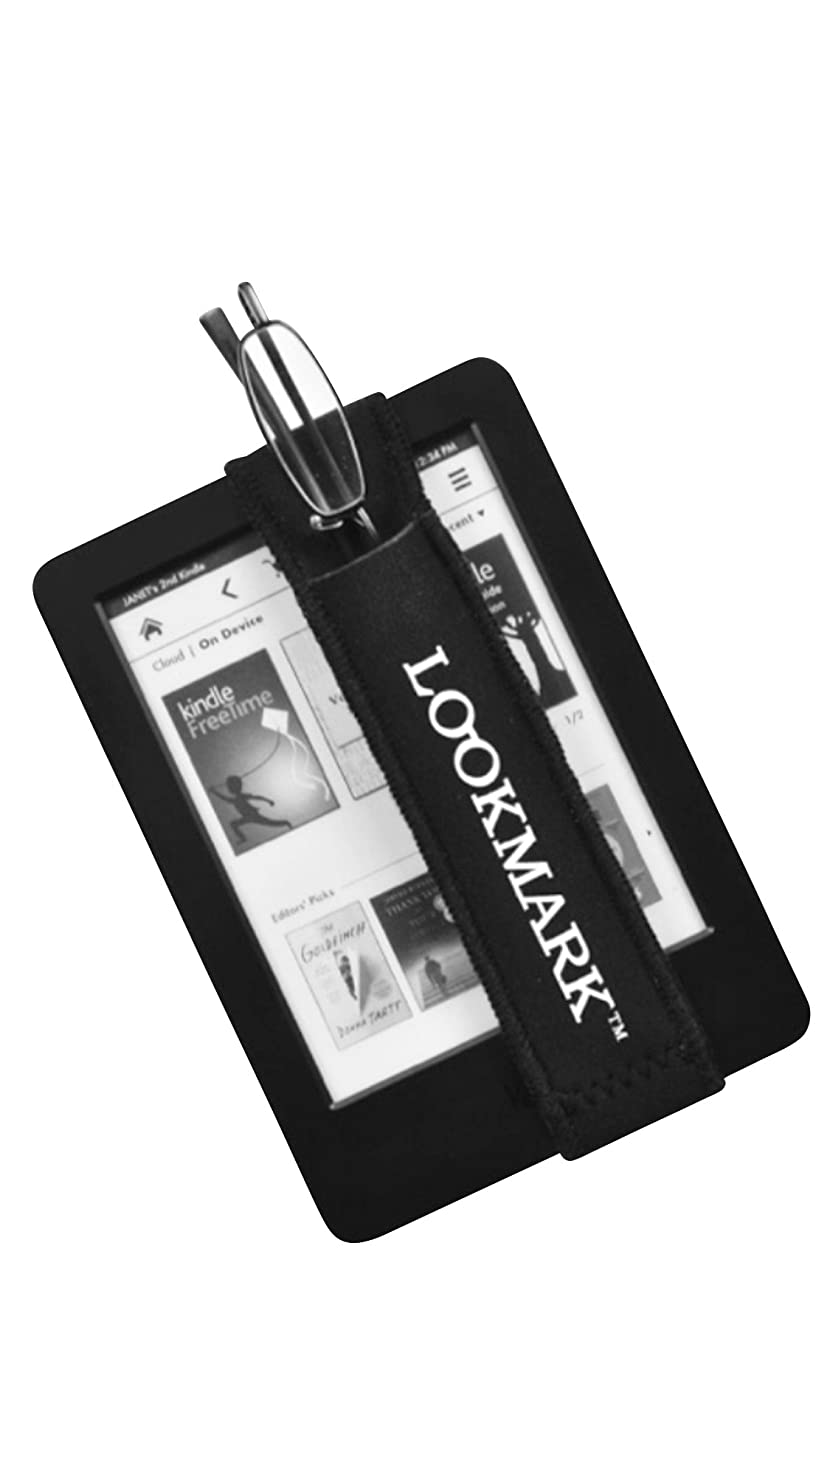 Tablet Accessory-Reading Glasses with Holder Band to Fit Tablet in Powers +1.00, 1.50, 2.00 and +2.50 (1.00)